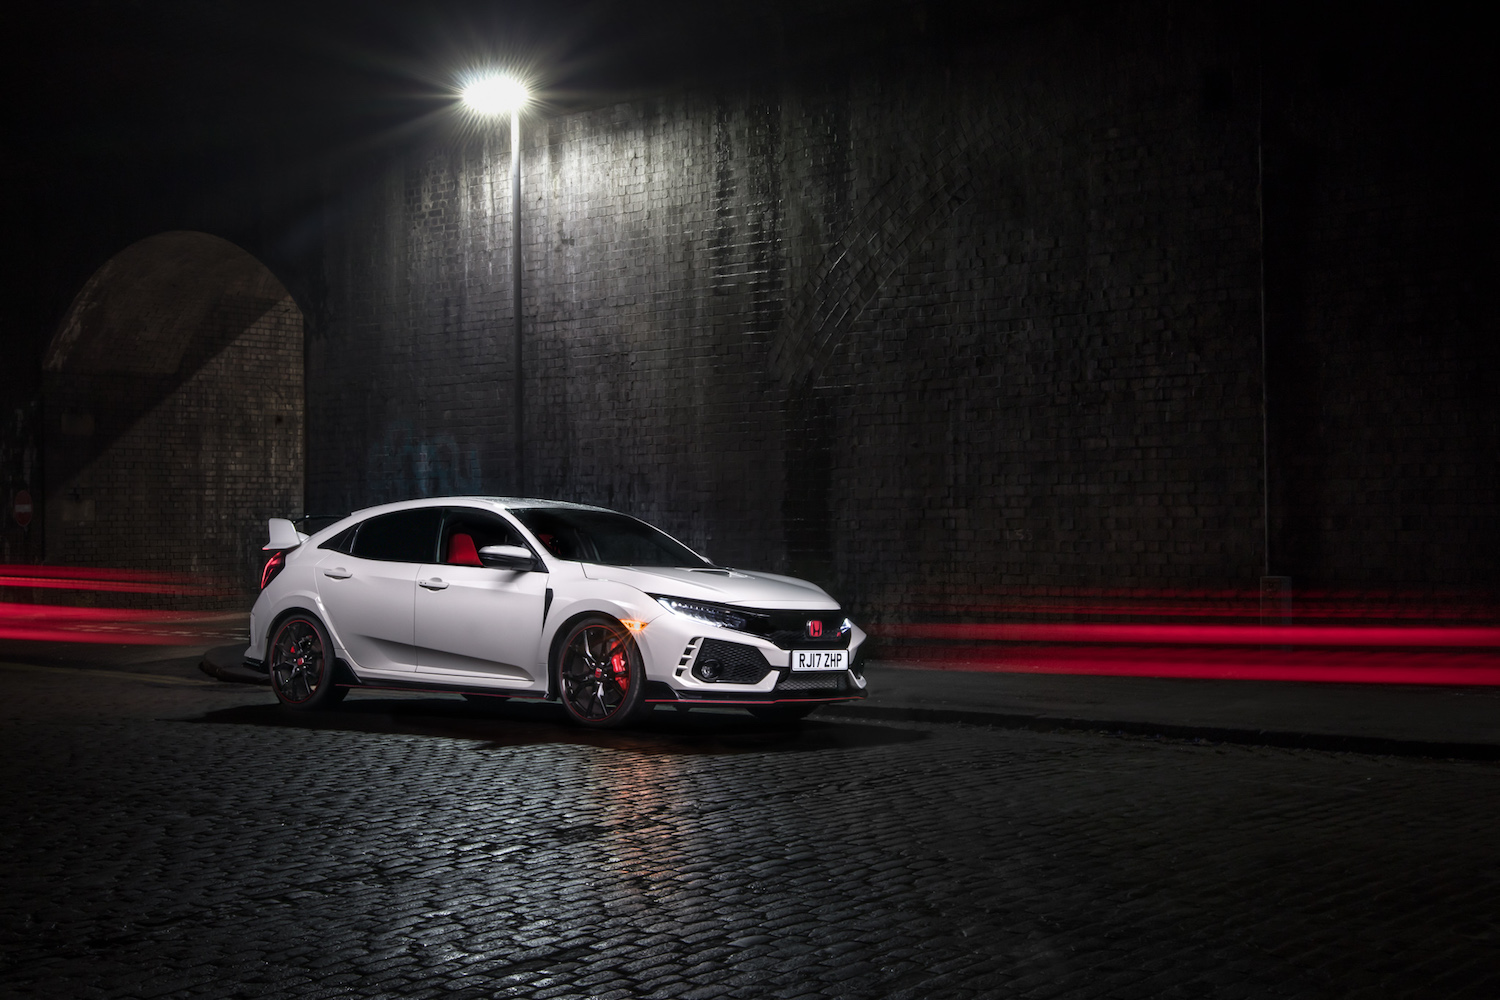 2018 Honda Civic Type R Specs >> FK8 Honda Civic Type R - (Everything You Need To Know in 2019)